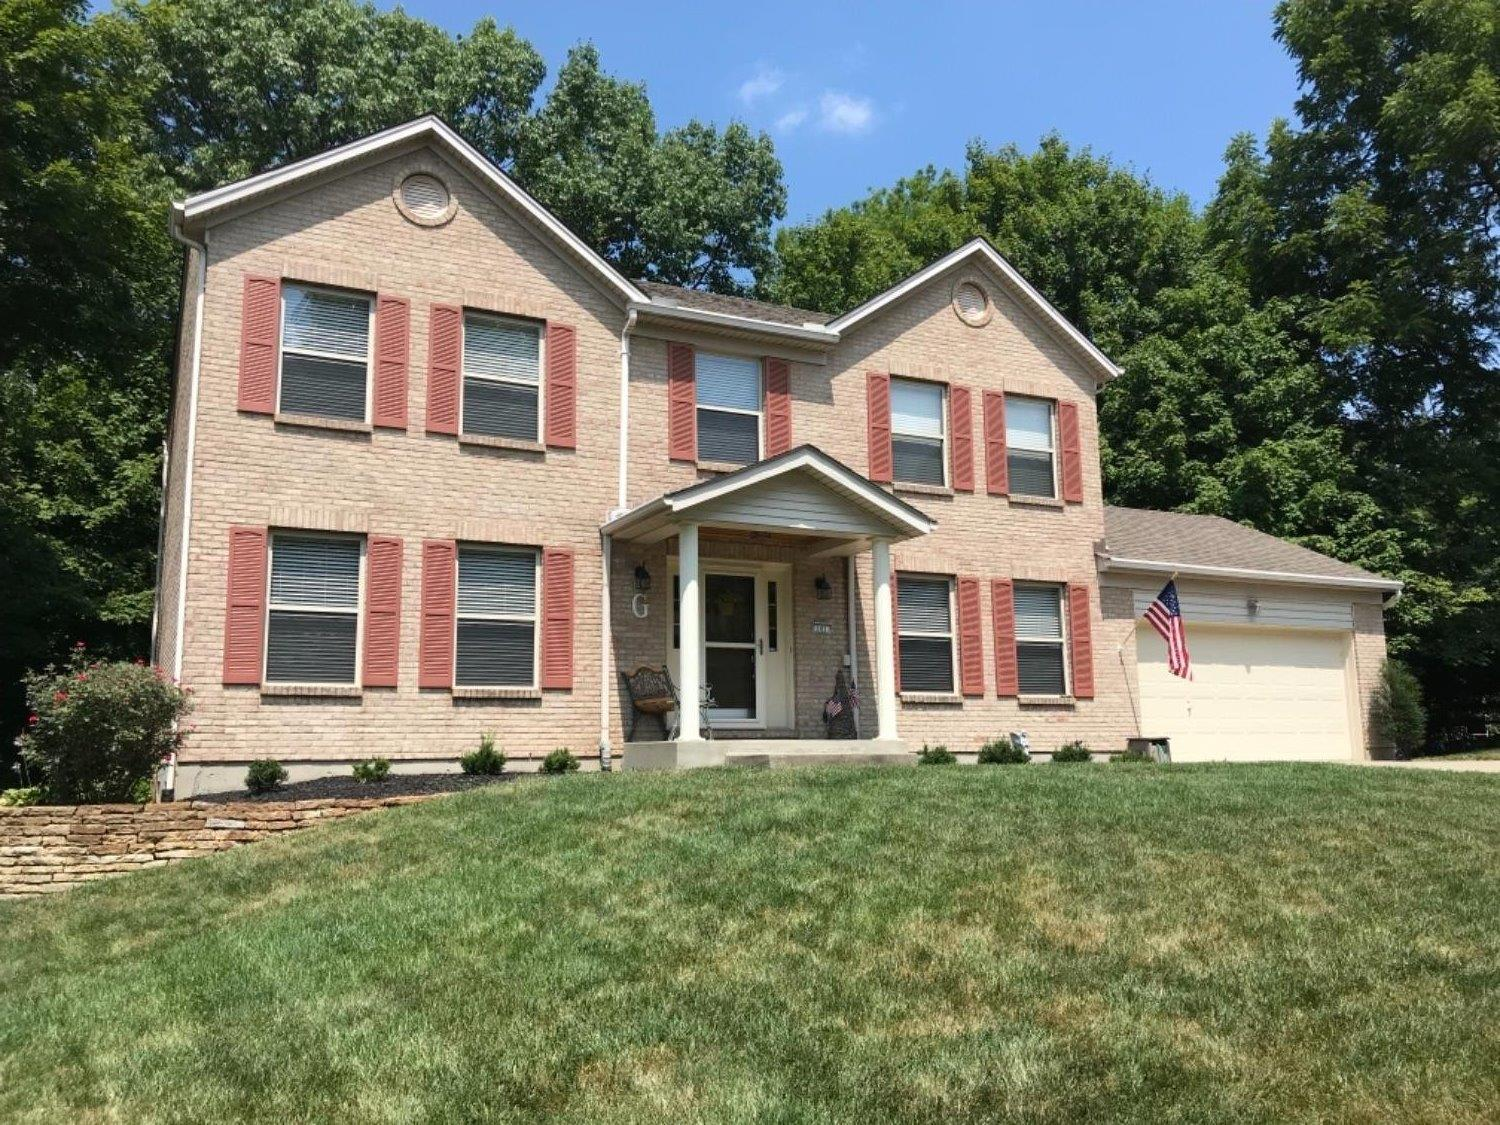 101 McCormick Point, Milford, OH 45150